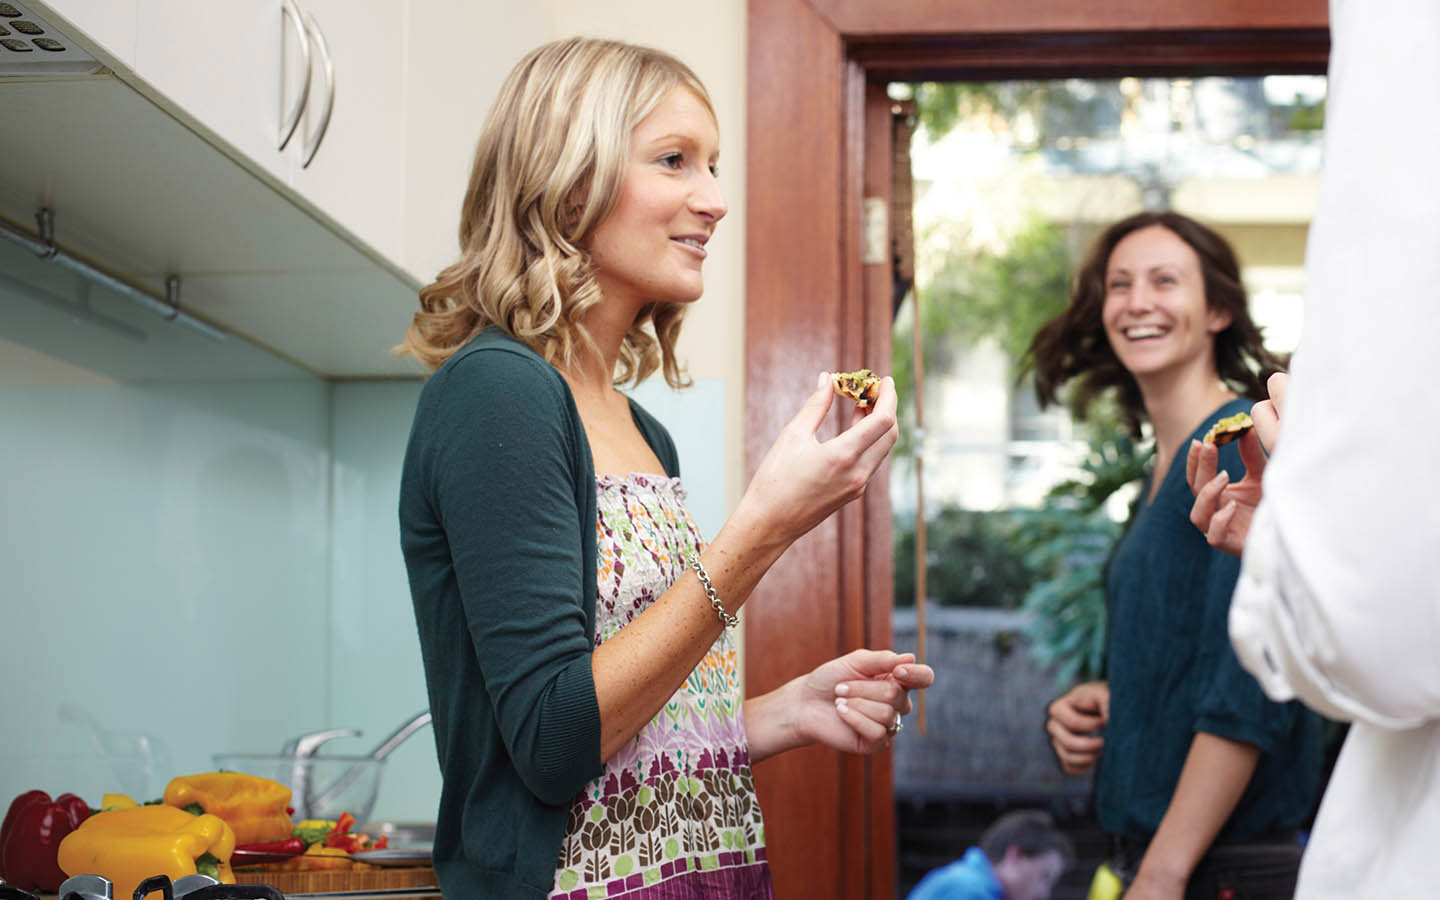 Woman enjoying a gathering with friends